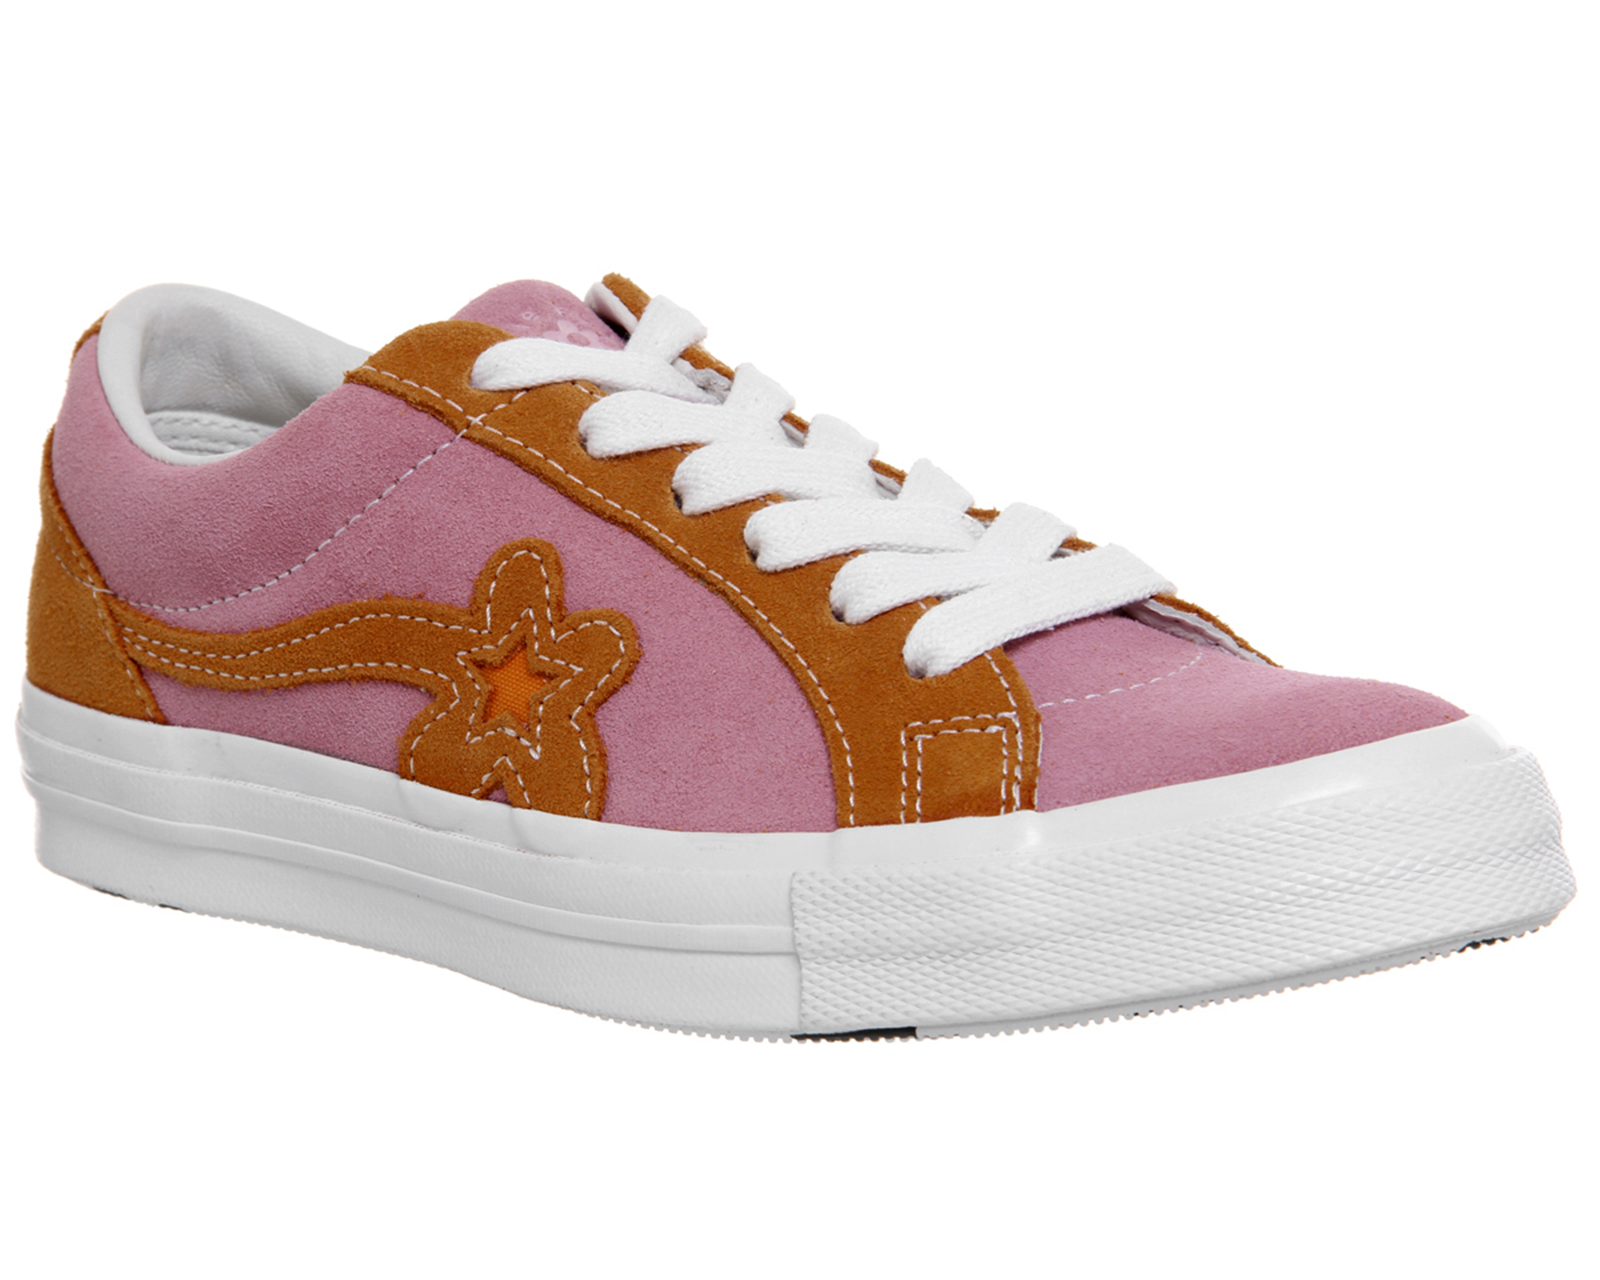 4a7a660d8be55 Détails sur Chaussures Femme Converse ONE STAR baskets TTC Candy Rose  Orange Peel Blanc Baskets Chaussures- afficher le titre d origine